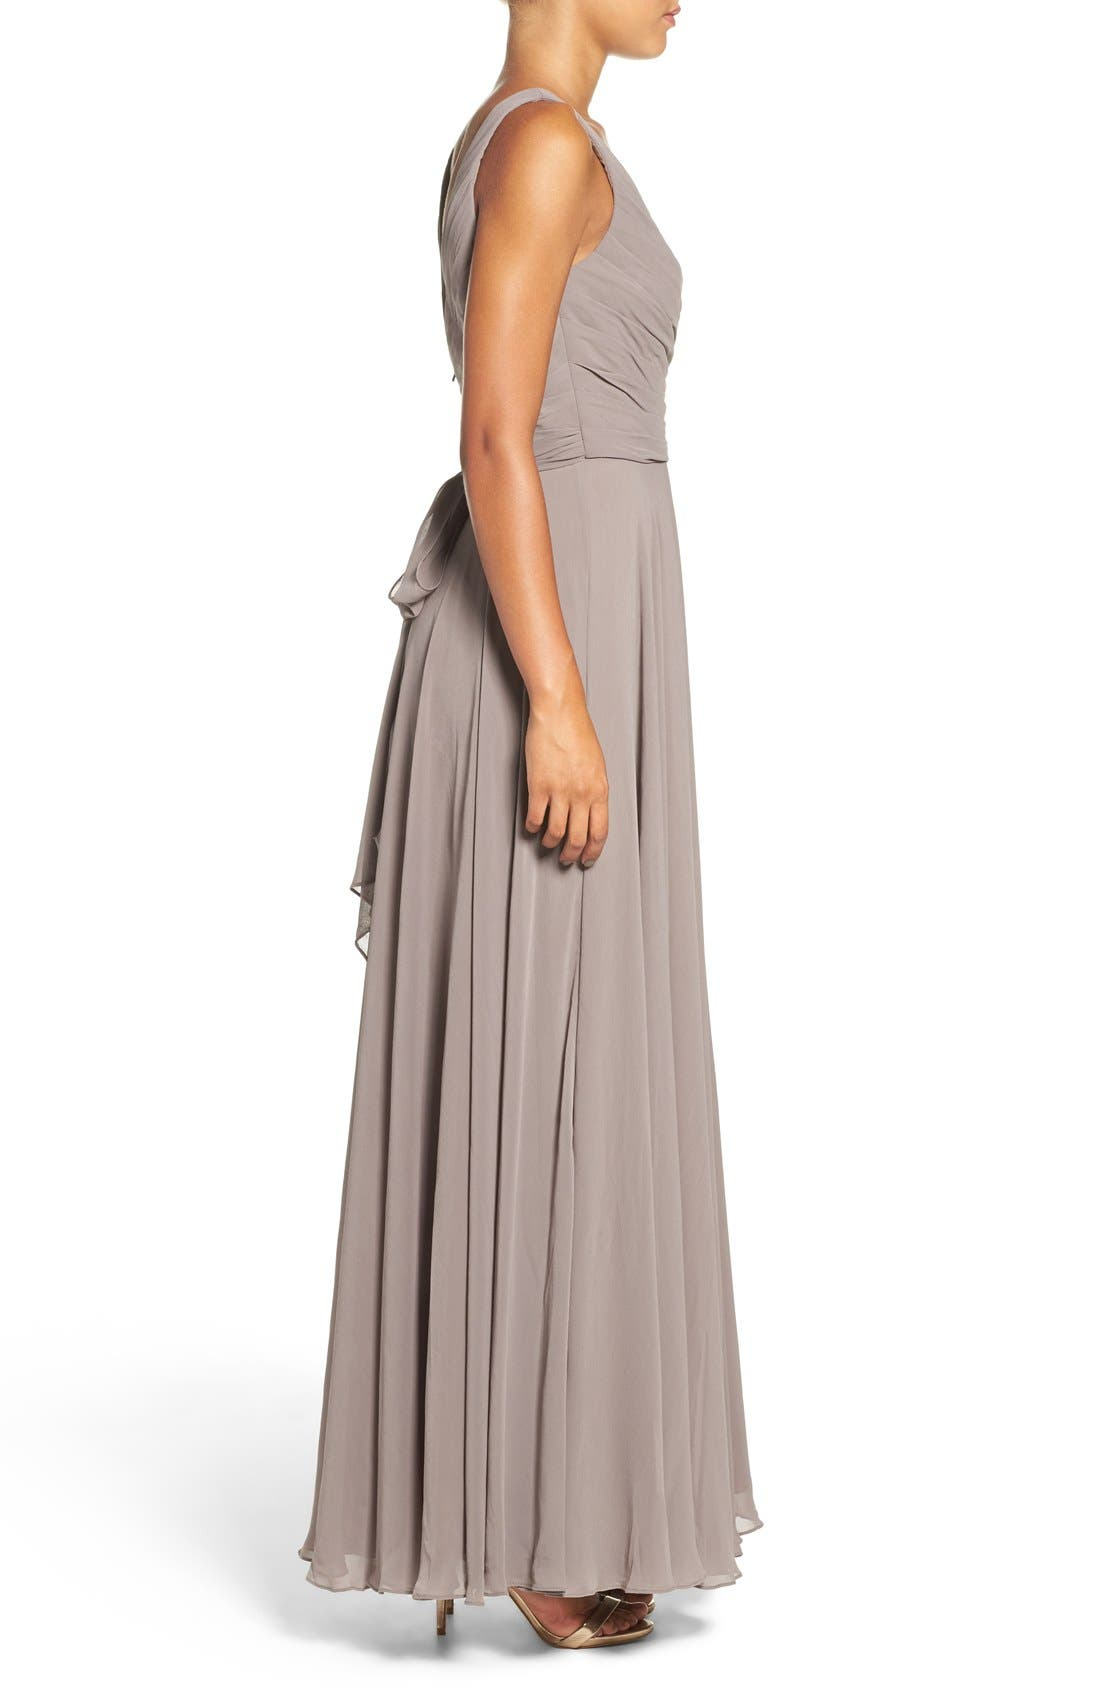 Karen V-Neck A-Line Chiffon Gown,                             Alternate thumbnail 3, color,                             020